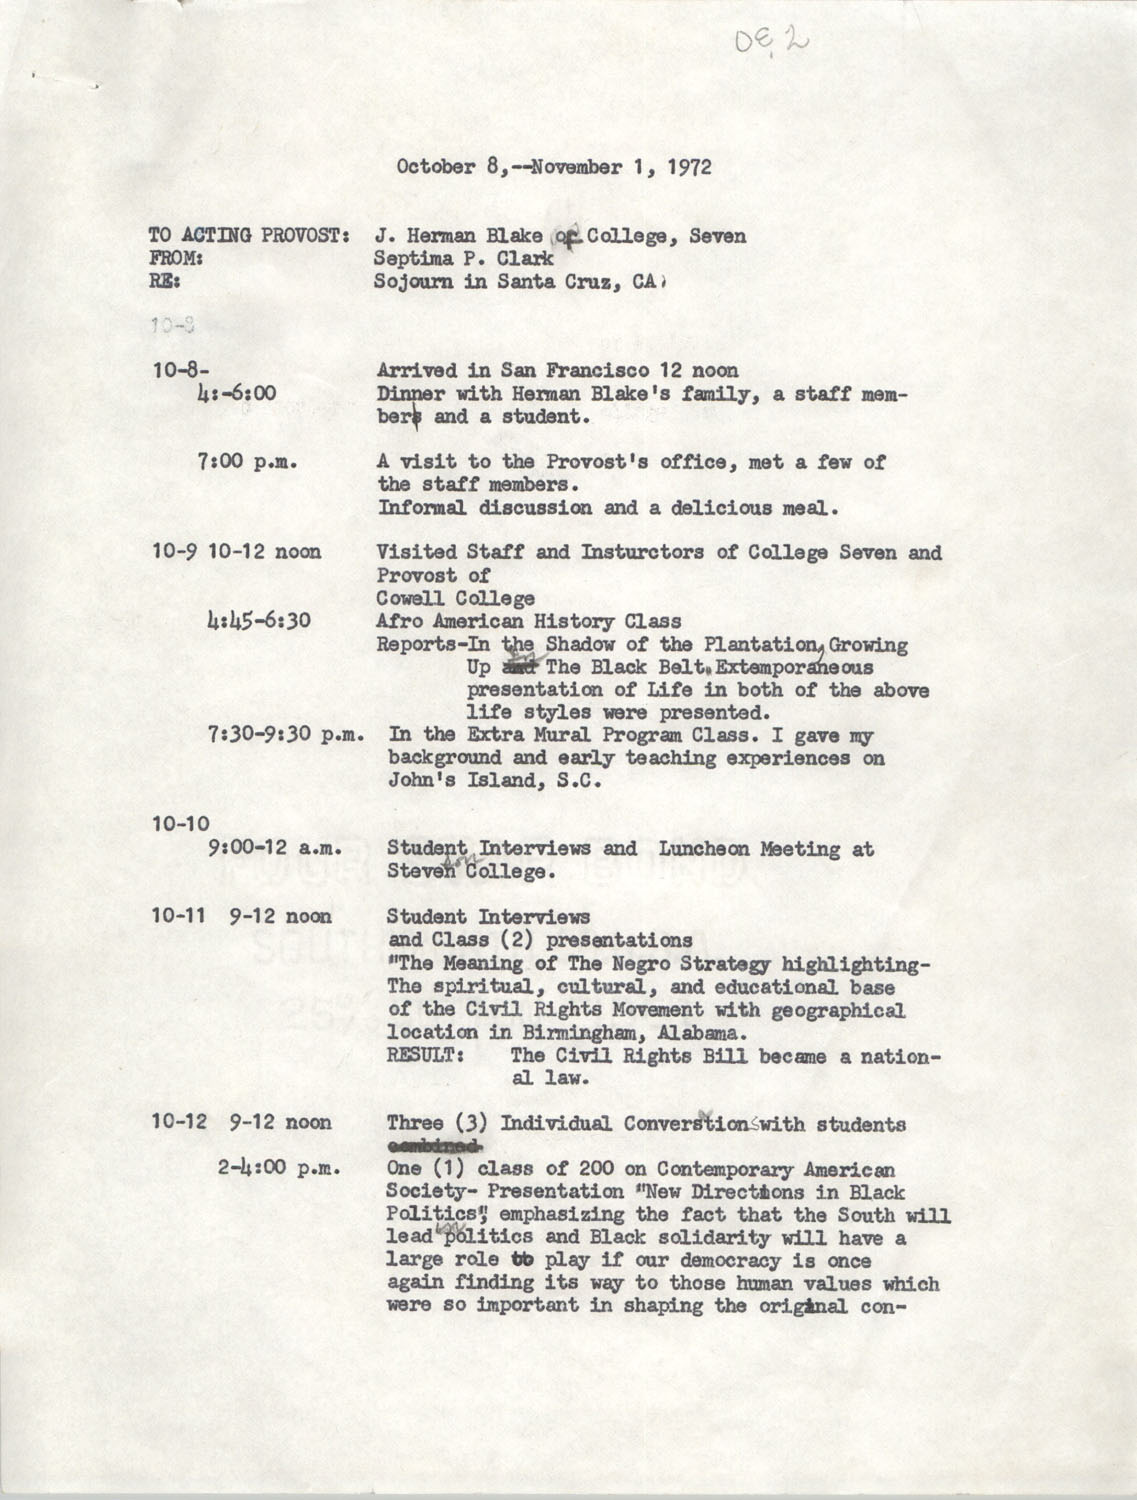 Schedule for Sojourn in Santa Cruz, College Seven, October 8 to November 1, 1972, Page 1